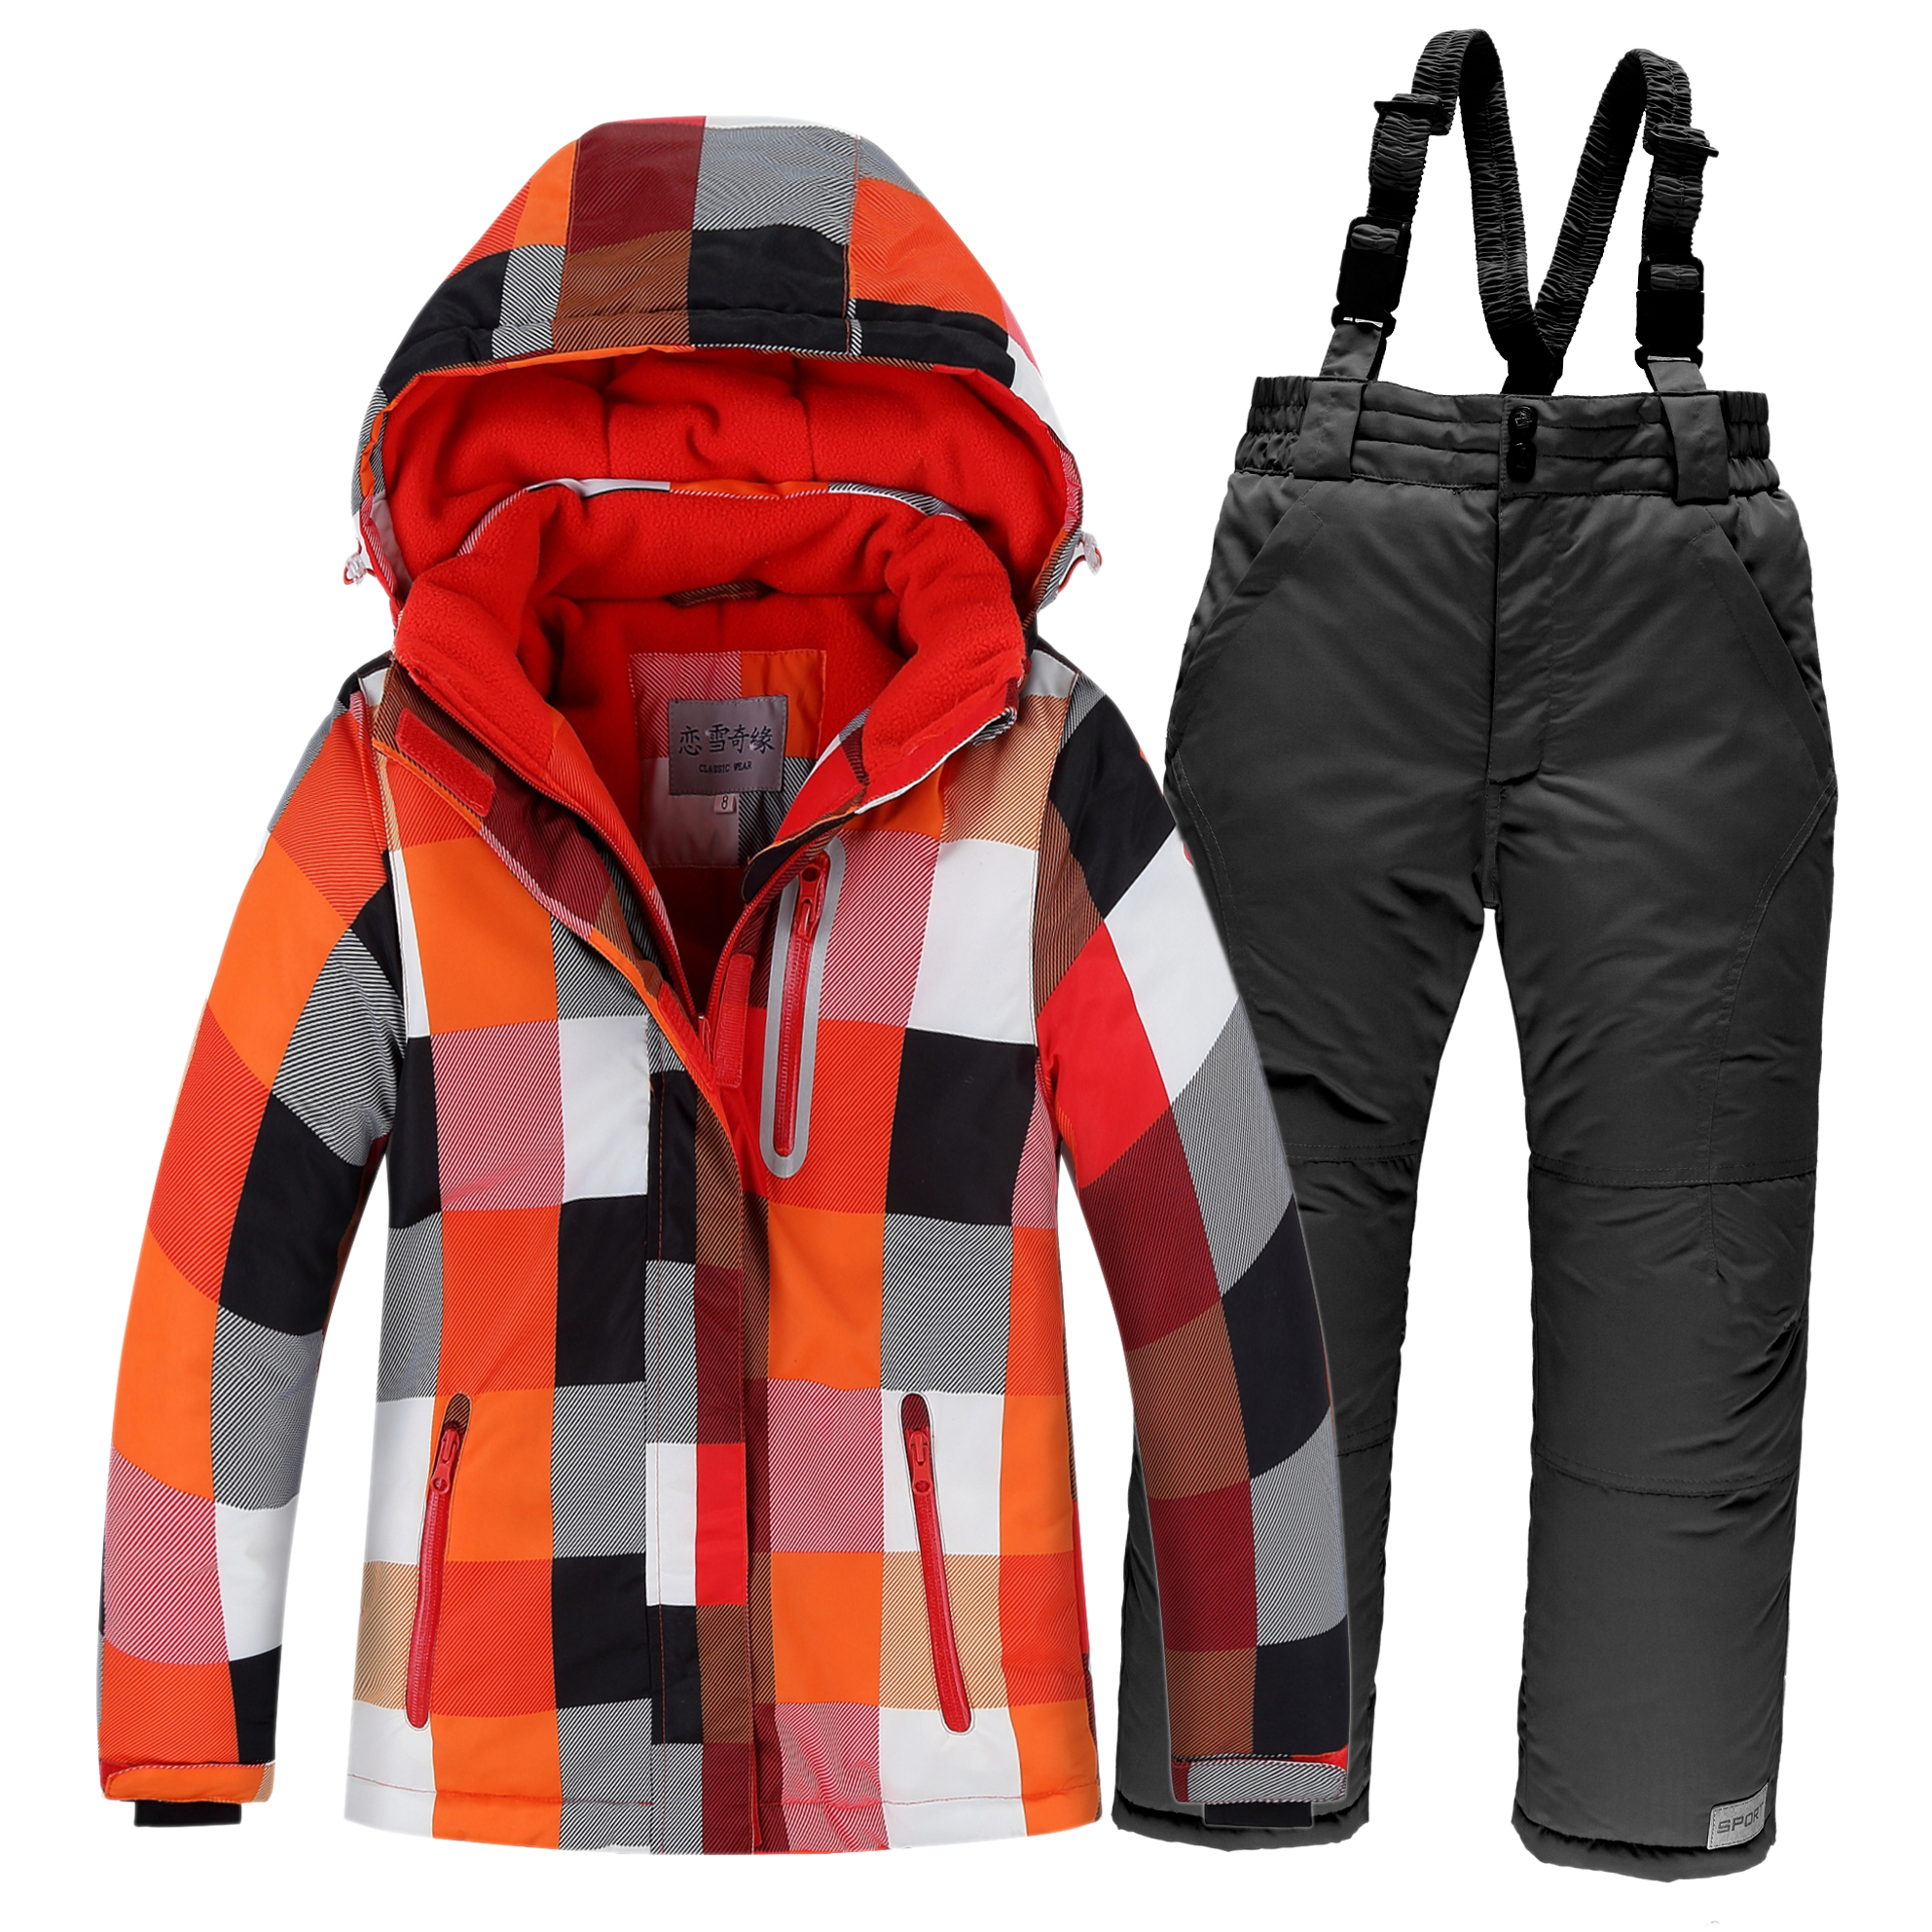 OLEKID Winter Children Ski Suit Windproof Warm Girls Odzież Zestaw kurtka + Kombinezony Boys Clothes Set 3-16 lat dzieci Snow Suits